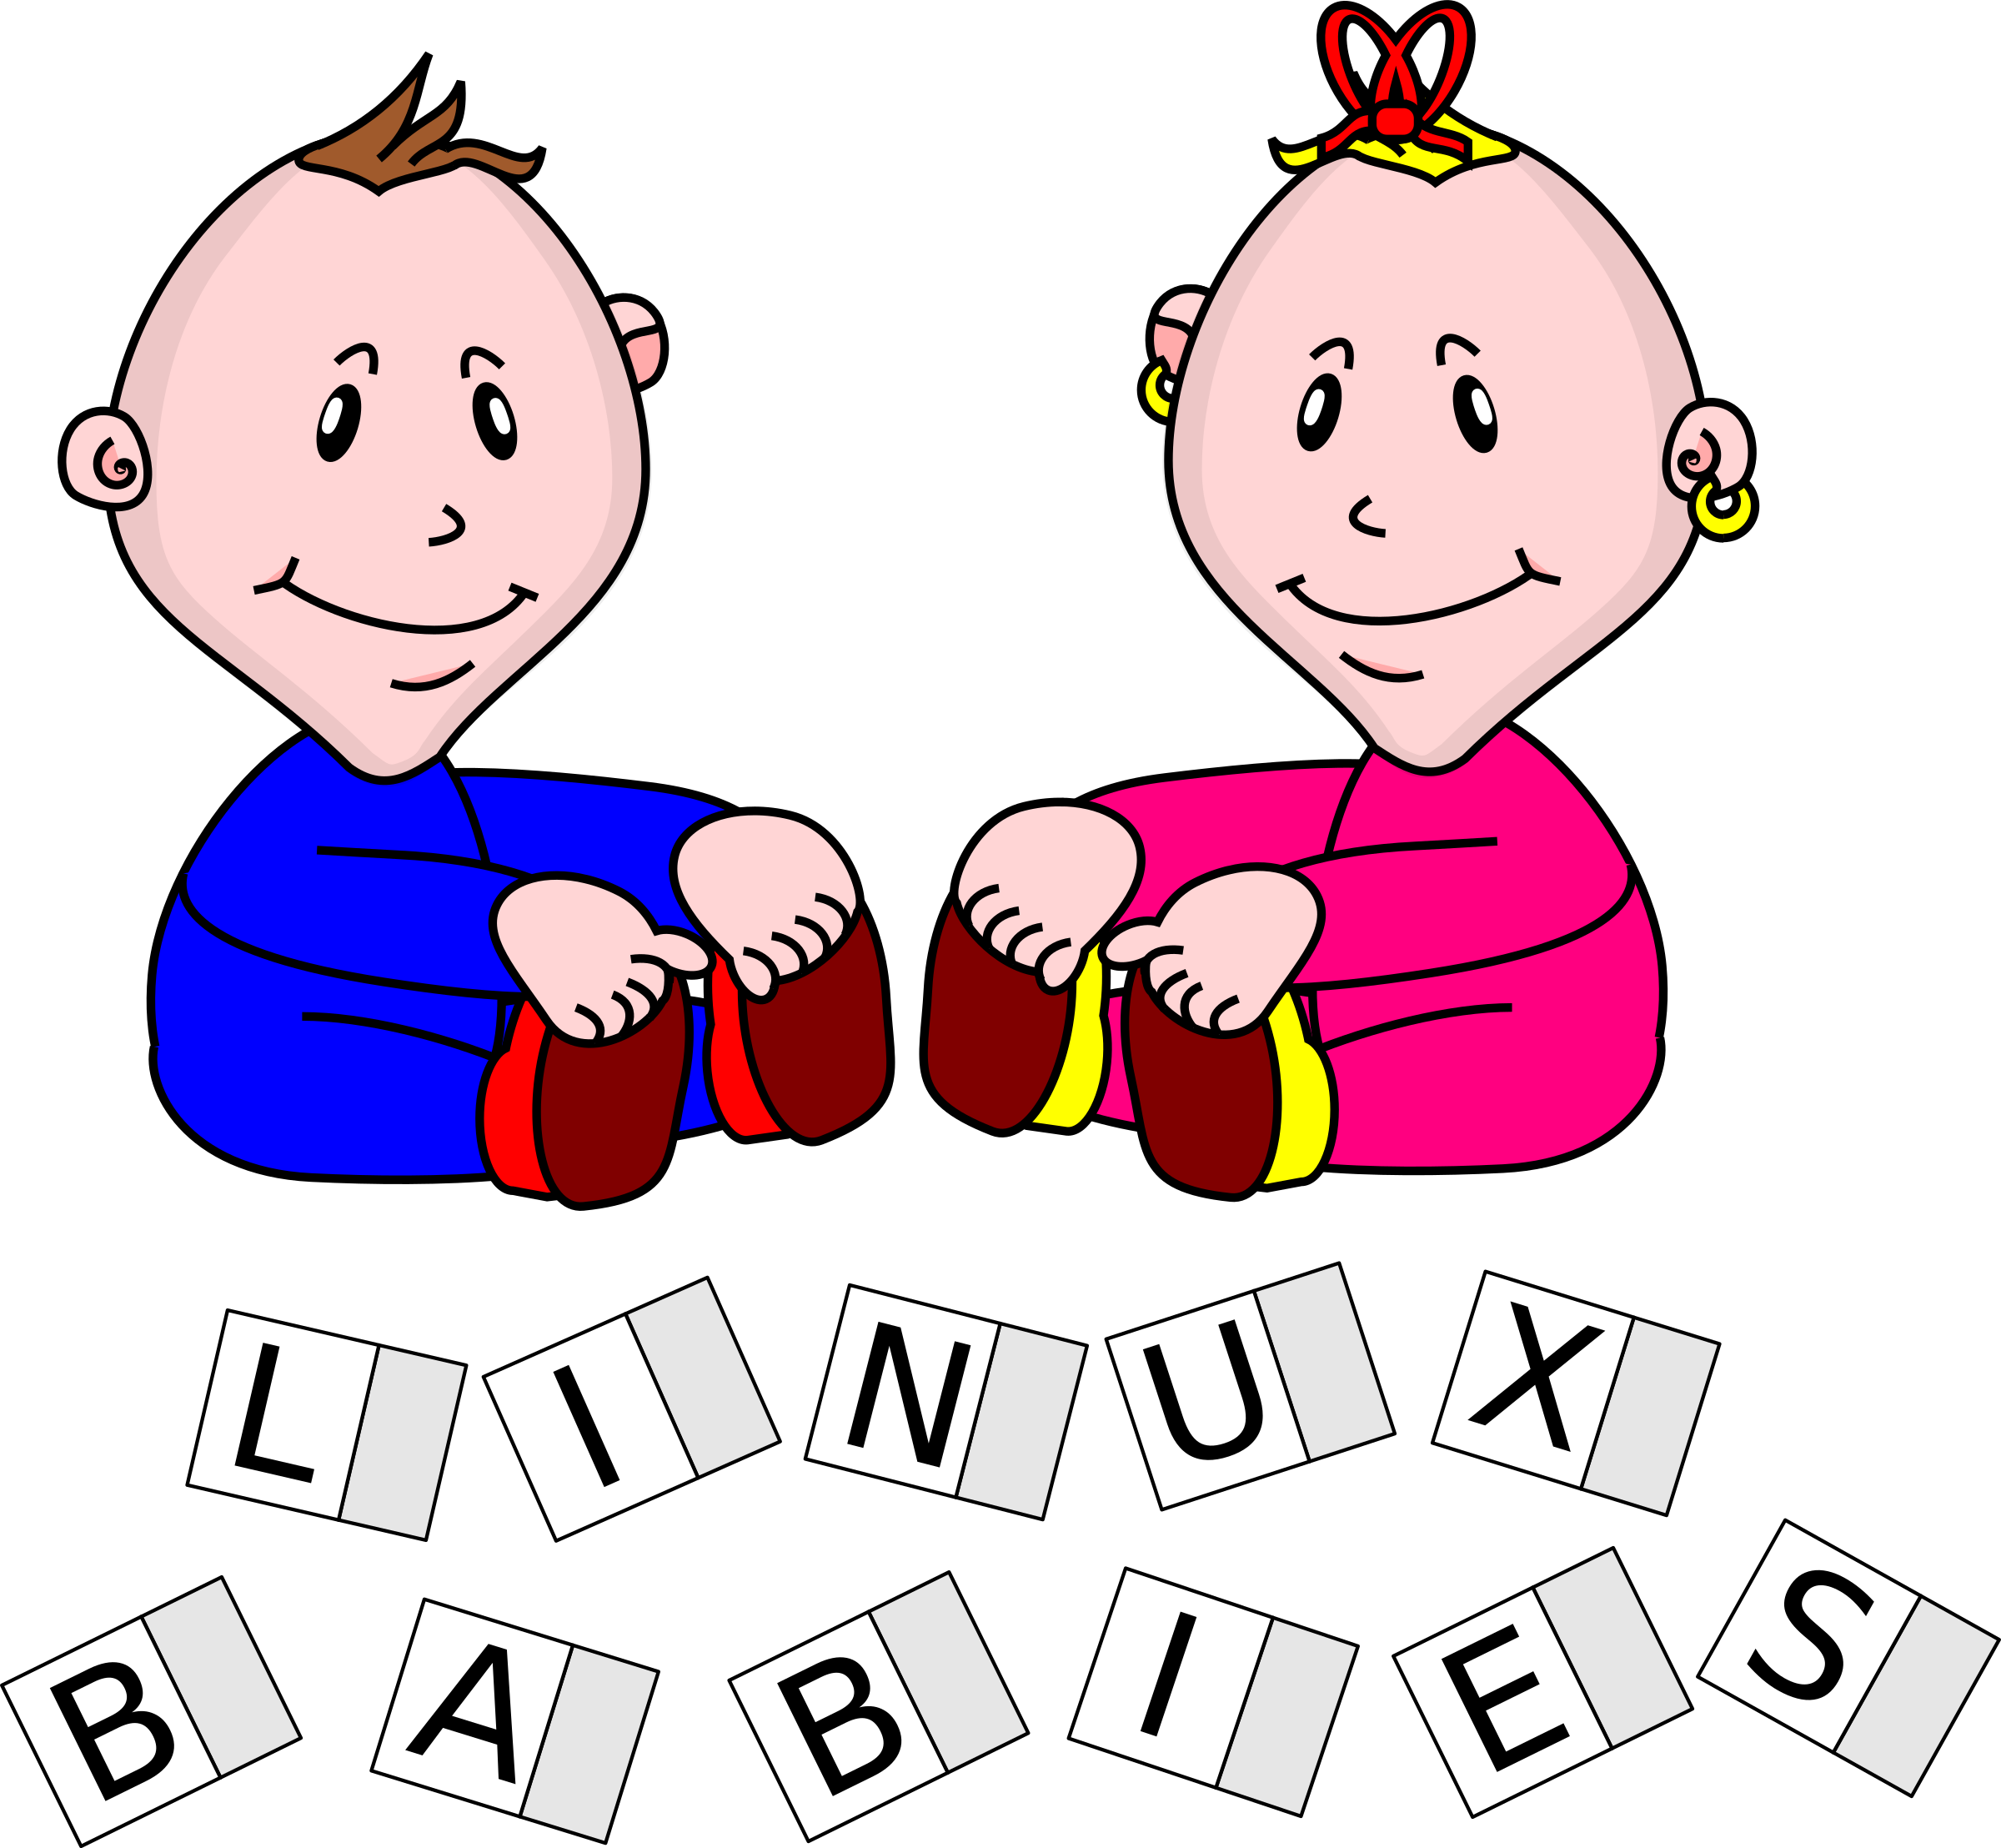 LinuxBabies by TomBrough